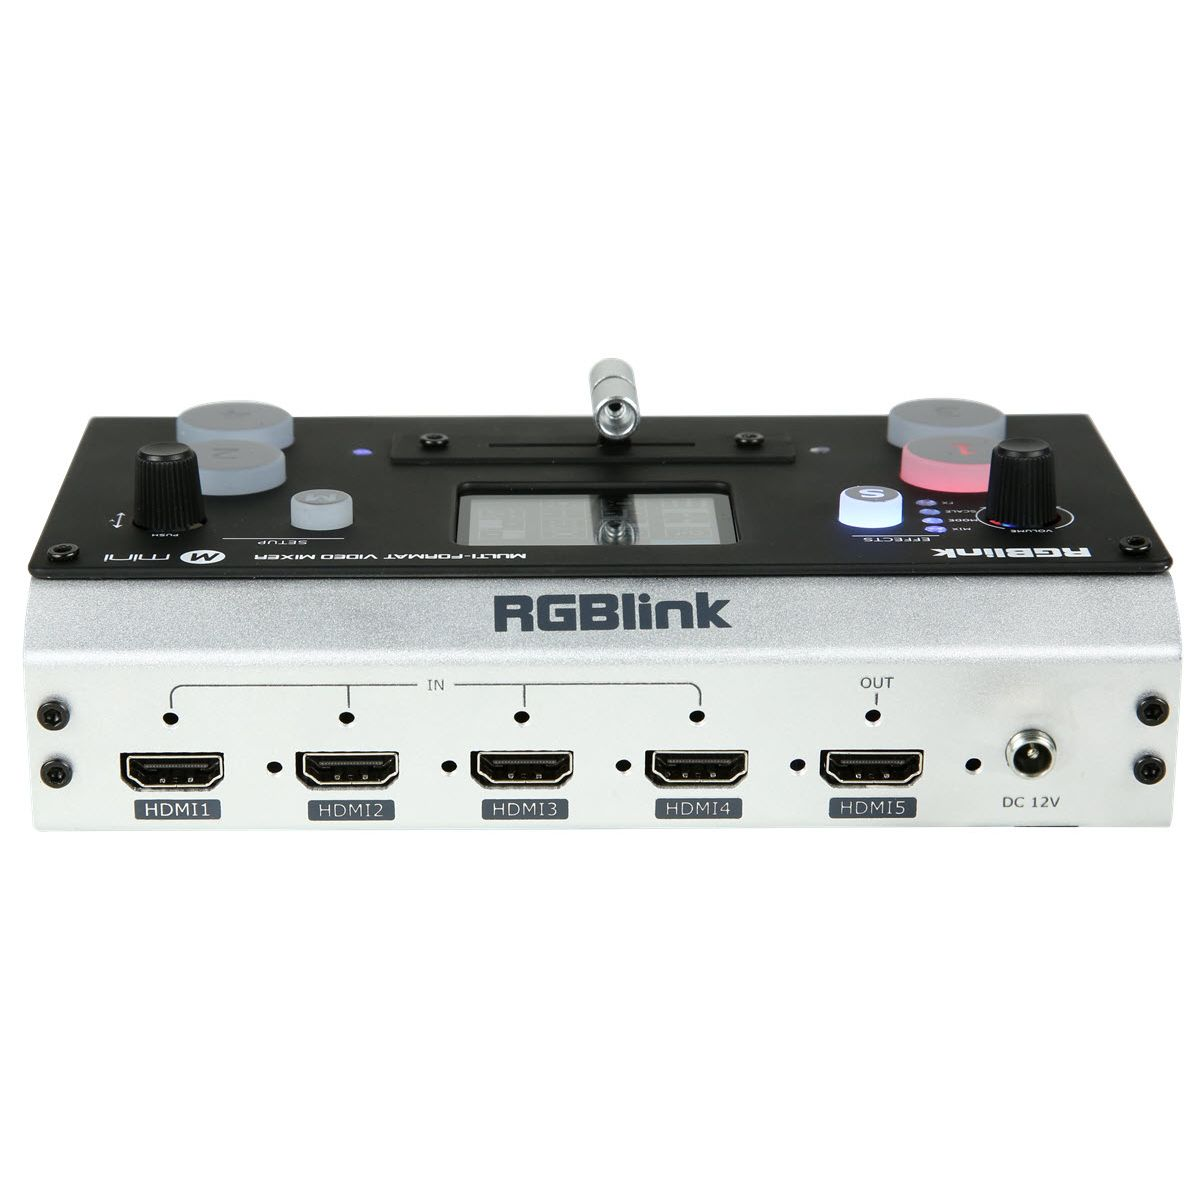 RGBLINK mini mixer video